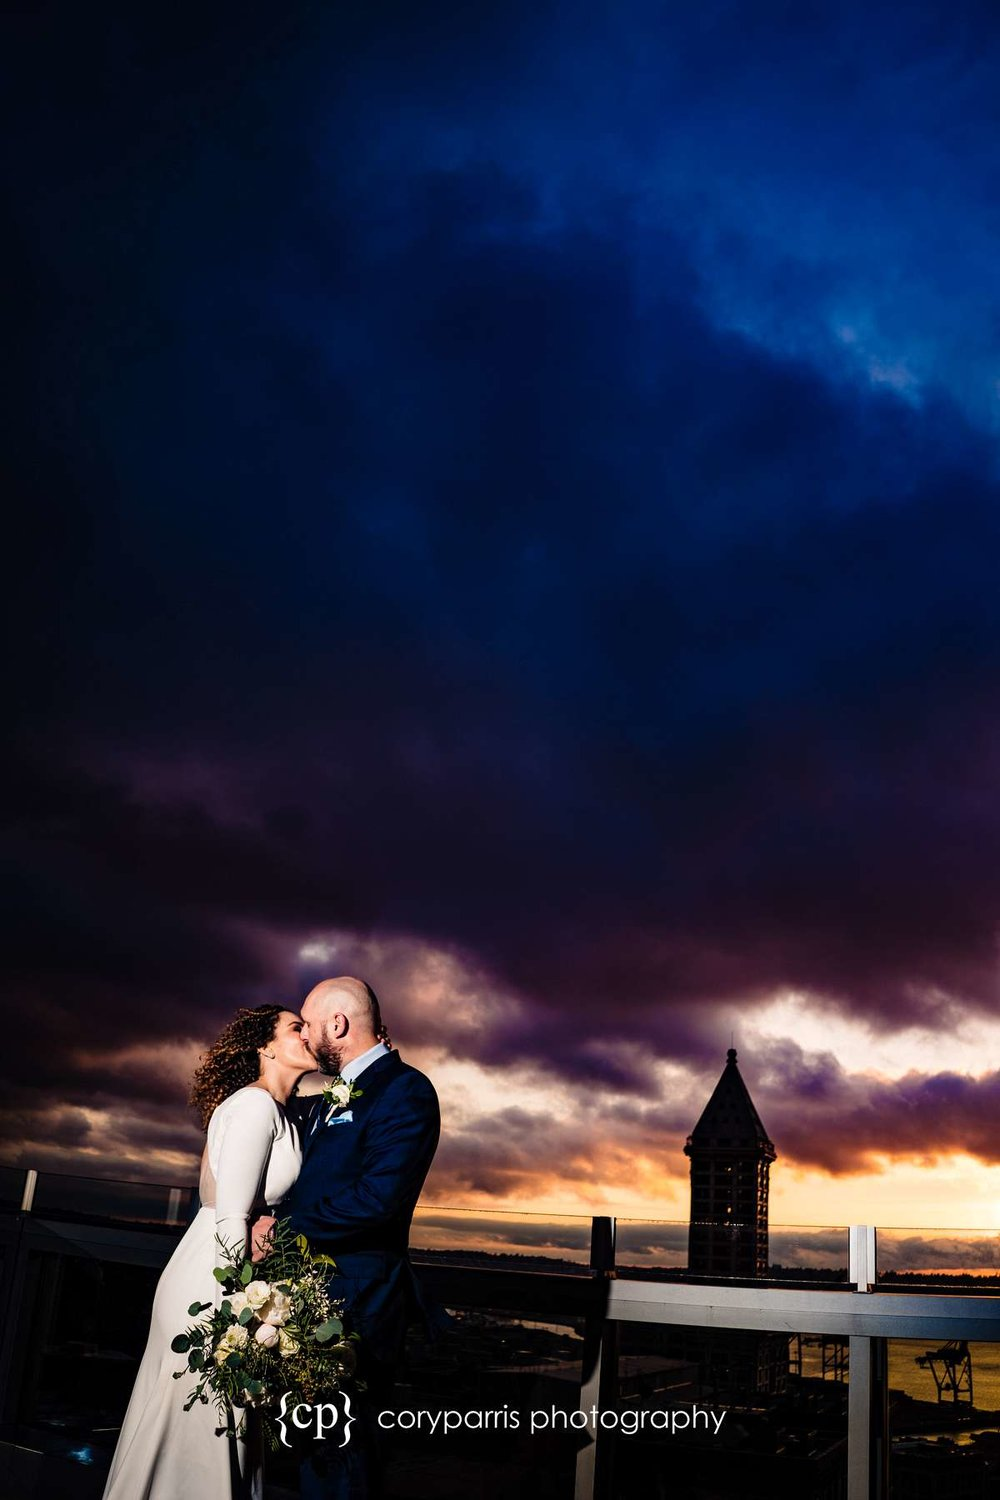 I had a great time playing with the sunset and views from the top of the courthouse before the elopement wedding ceremony